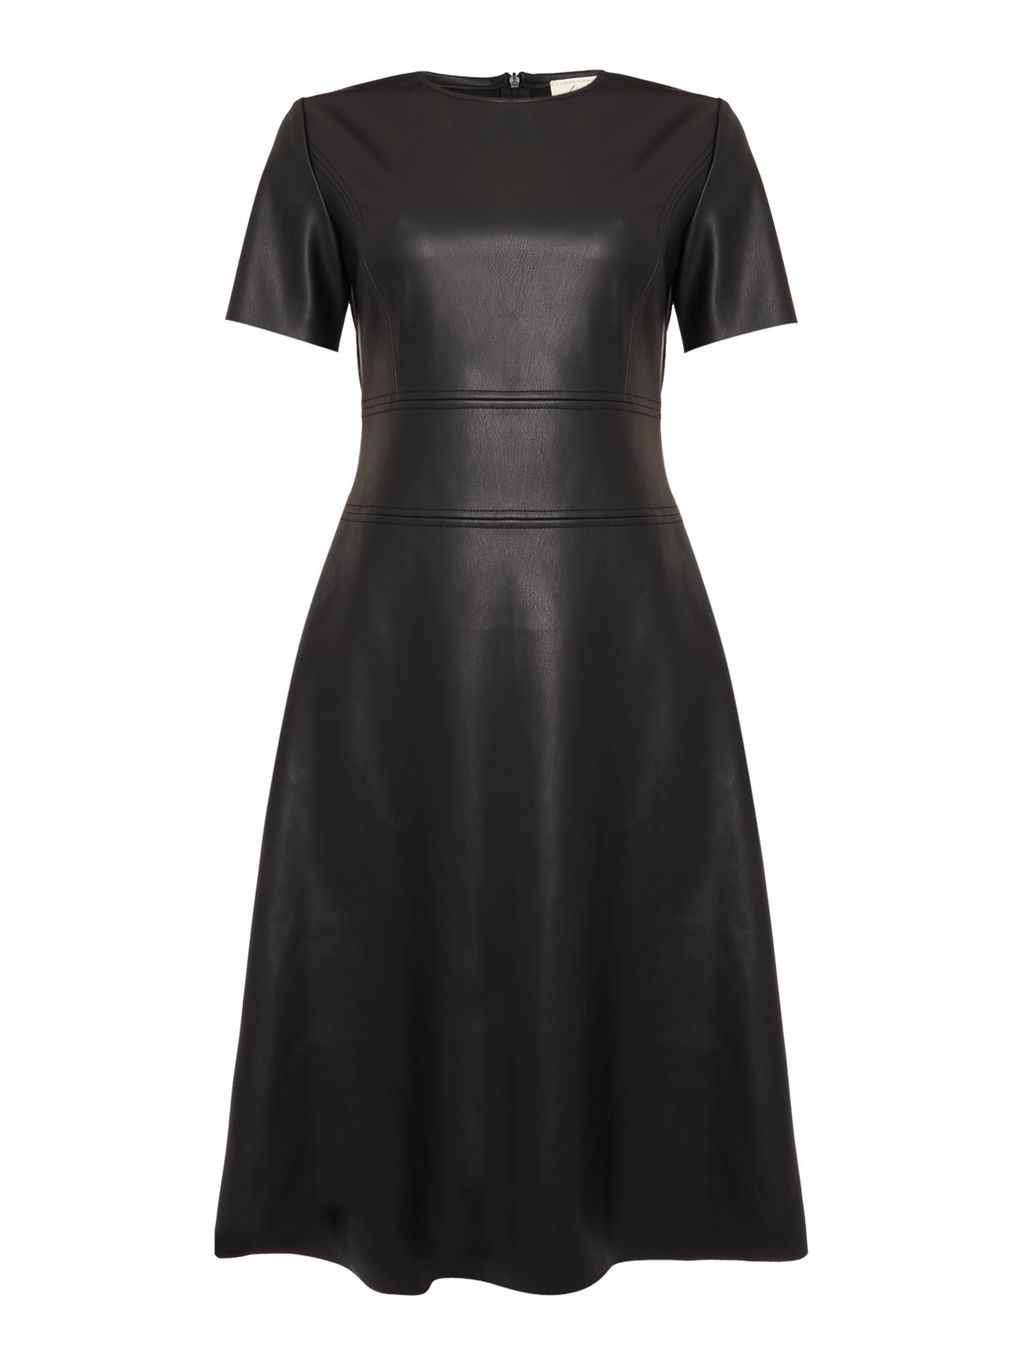 Flora Pu Full Skirted Dress, Black - pattern: plain; predominant colour: black; occasions: evening; length: just above the knee; fit: fitted at waist & bust; style: fit & flare; fibres: polyester/polyamide - 100%; neckline: crew; sleeve length: short sleeve; sleeve style: standard; texture group: leather; pattern type: fabric; season: s/s 2016; wardrobe: event